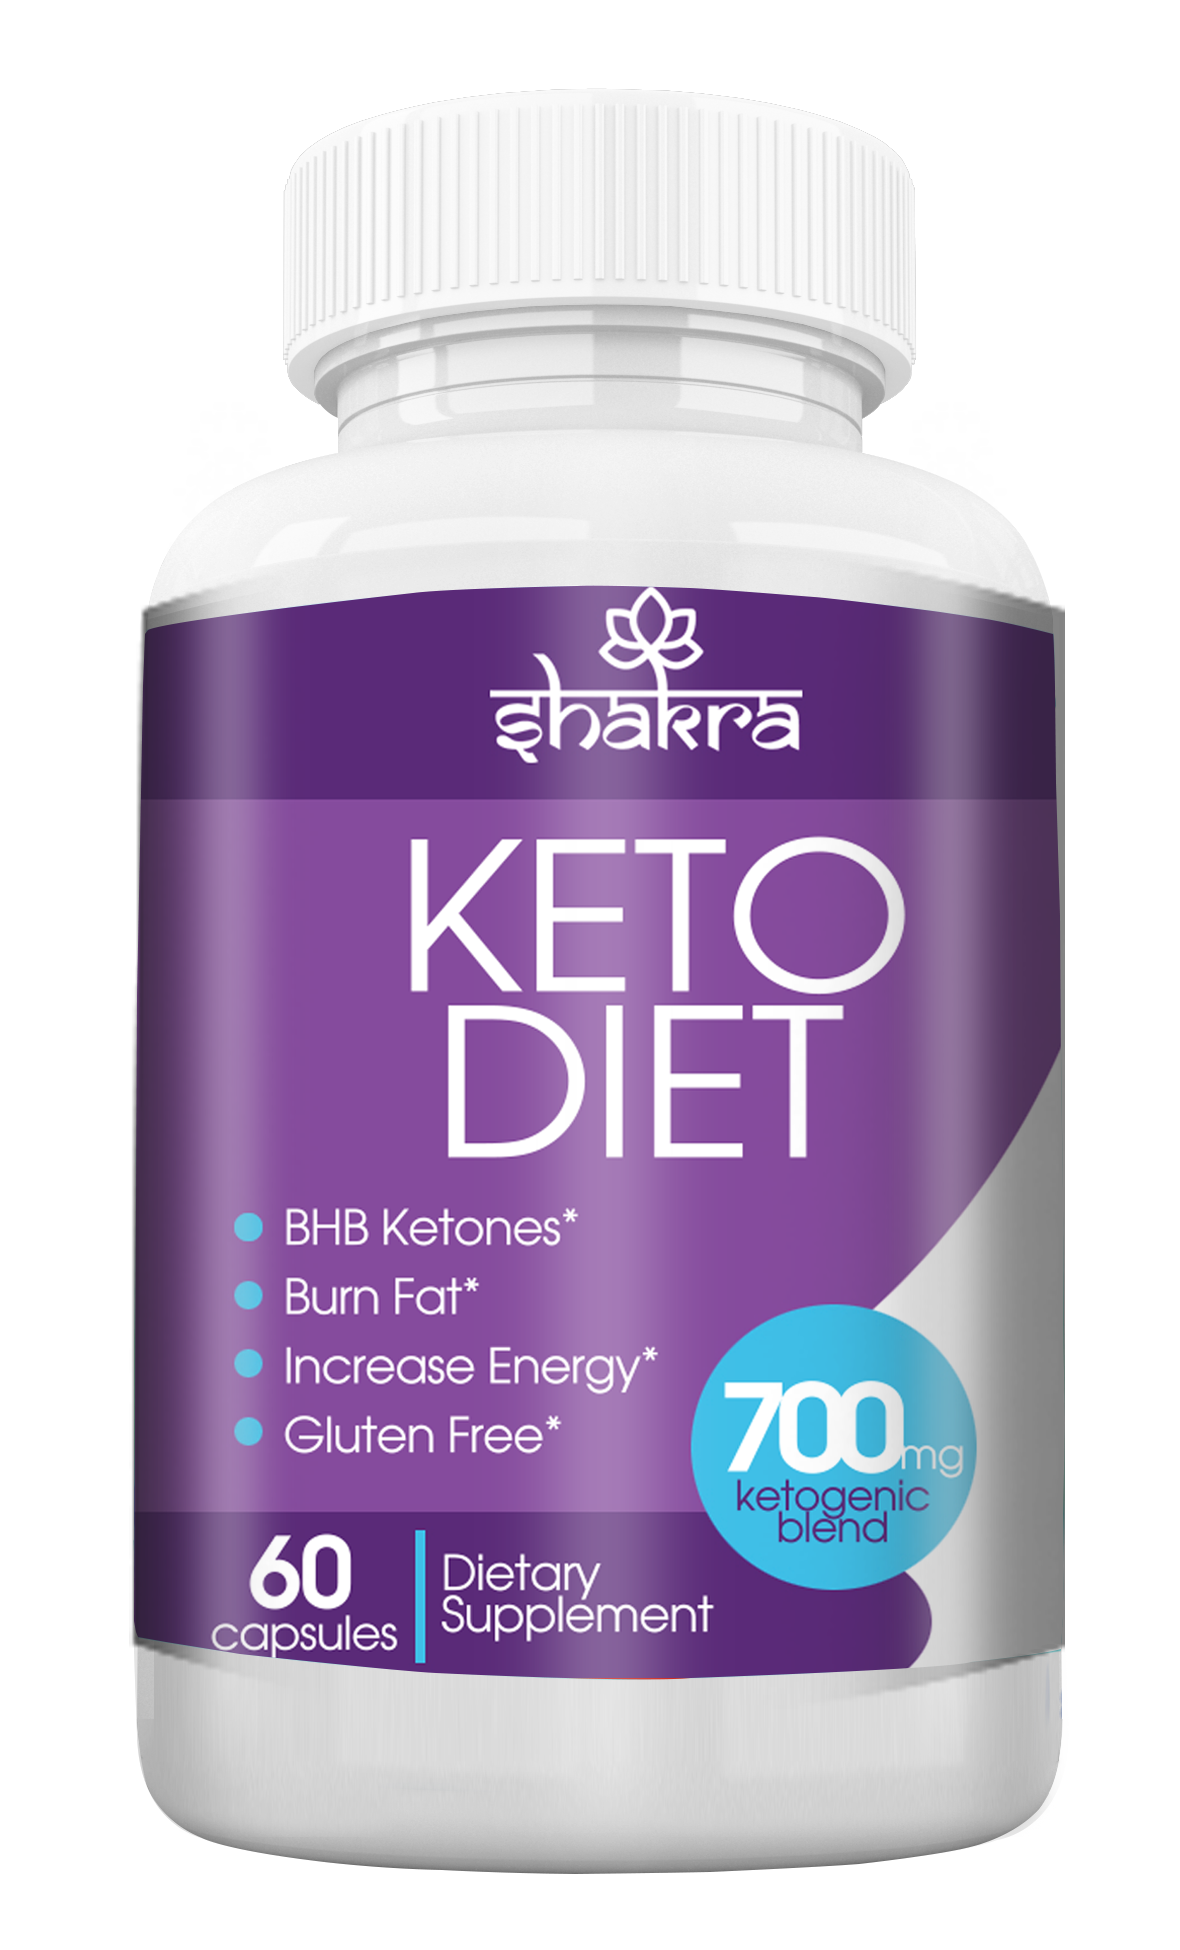 Why Every Judge On Shark Tank Backed This Product Keto Diet Review Keto Diet Keto Pills